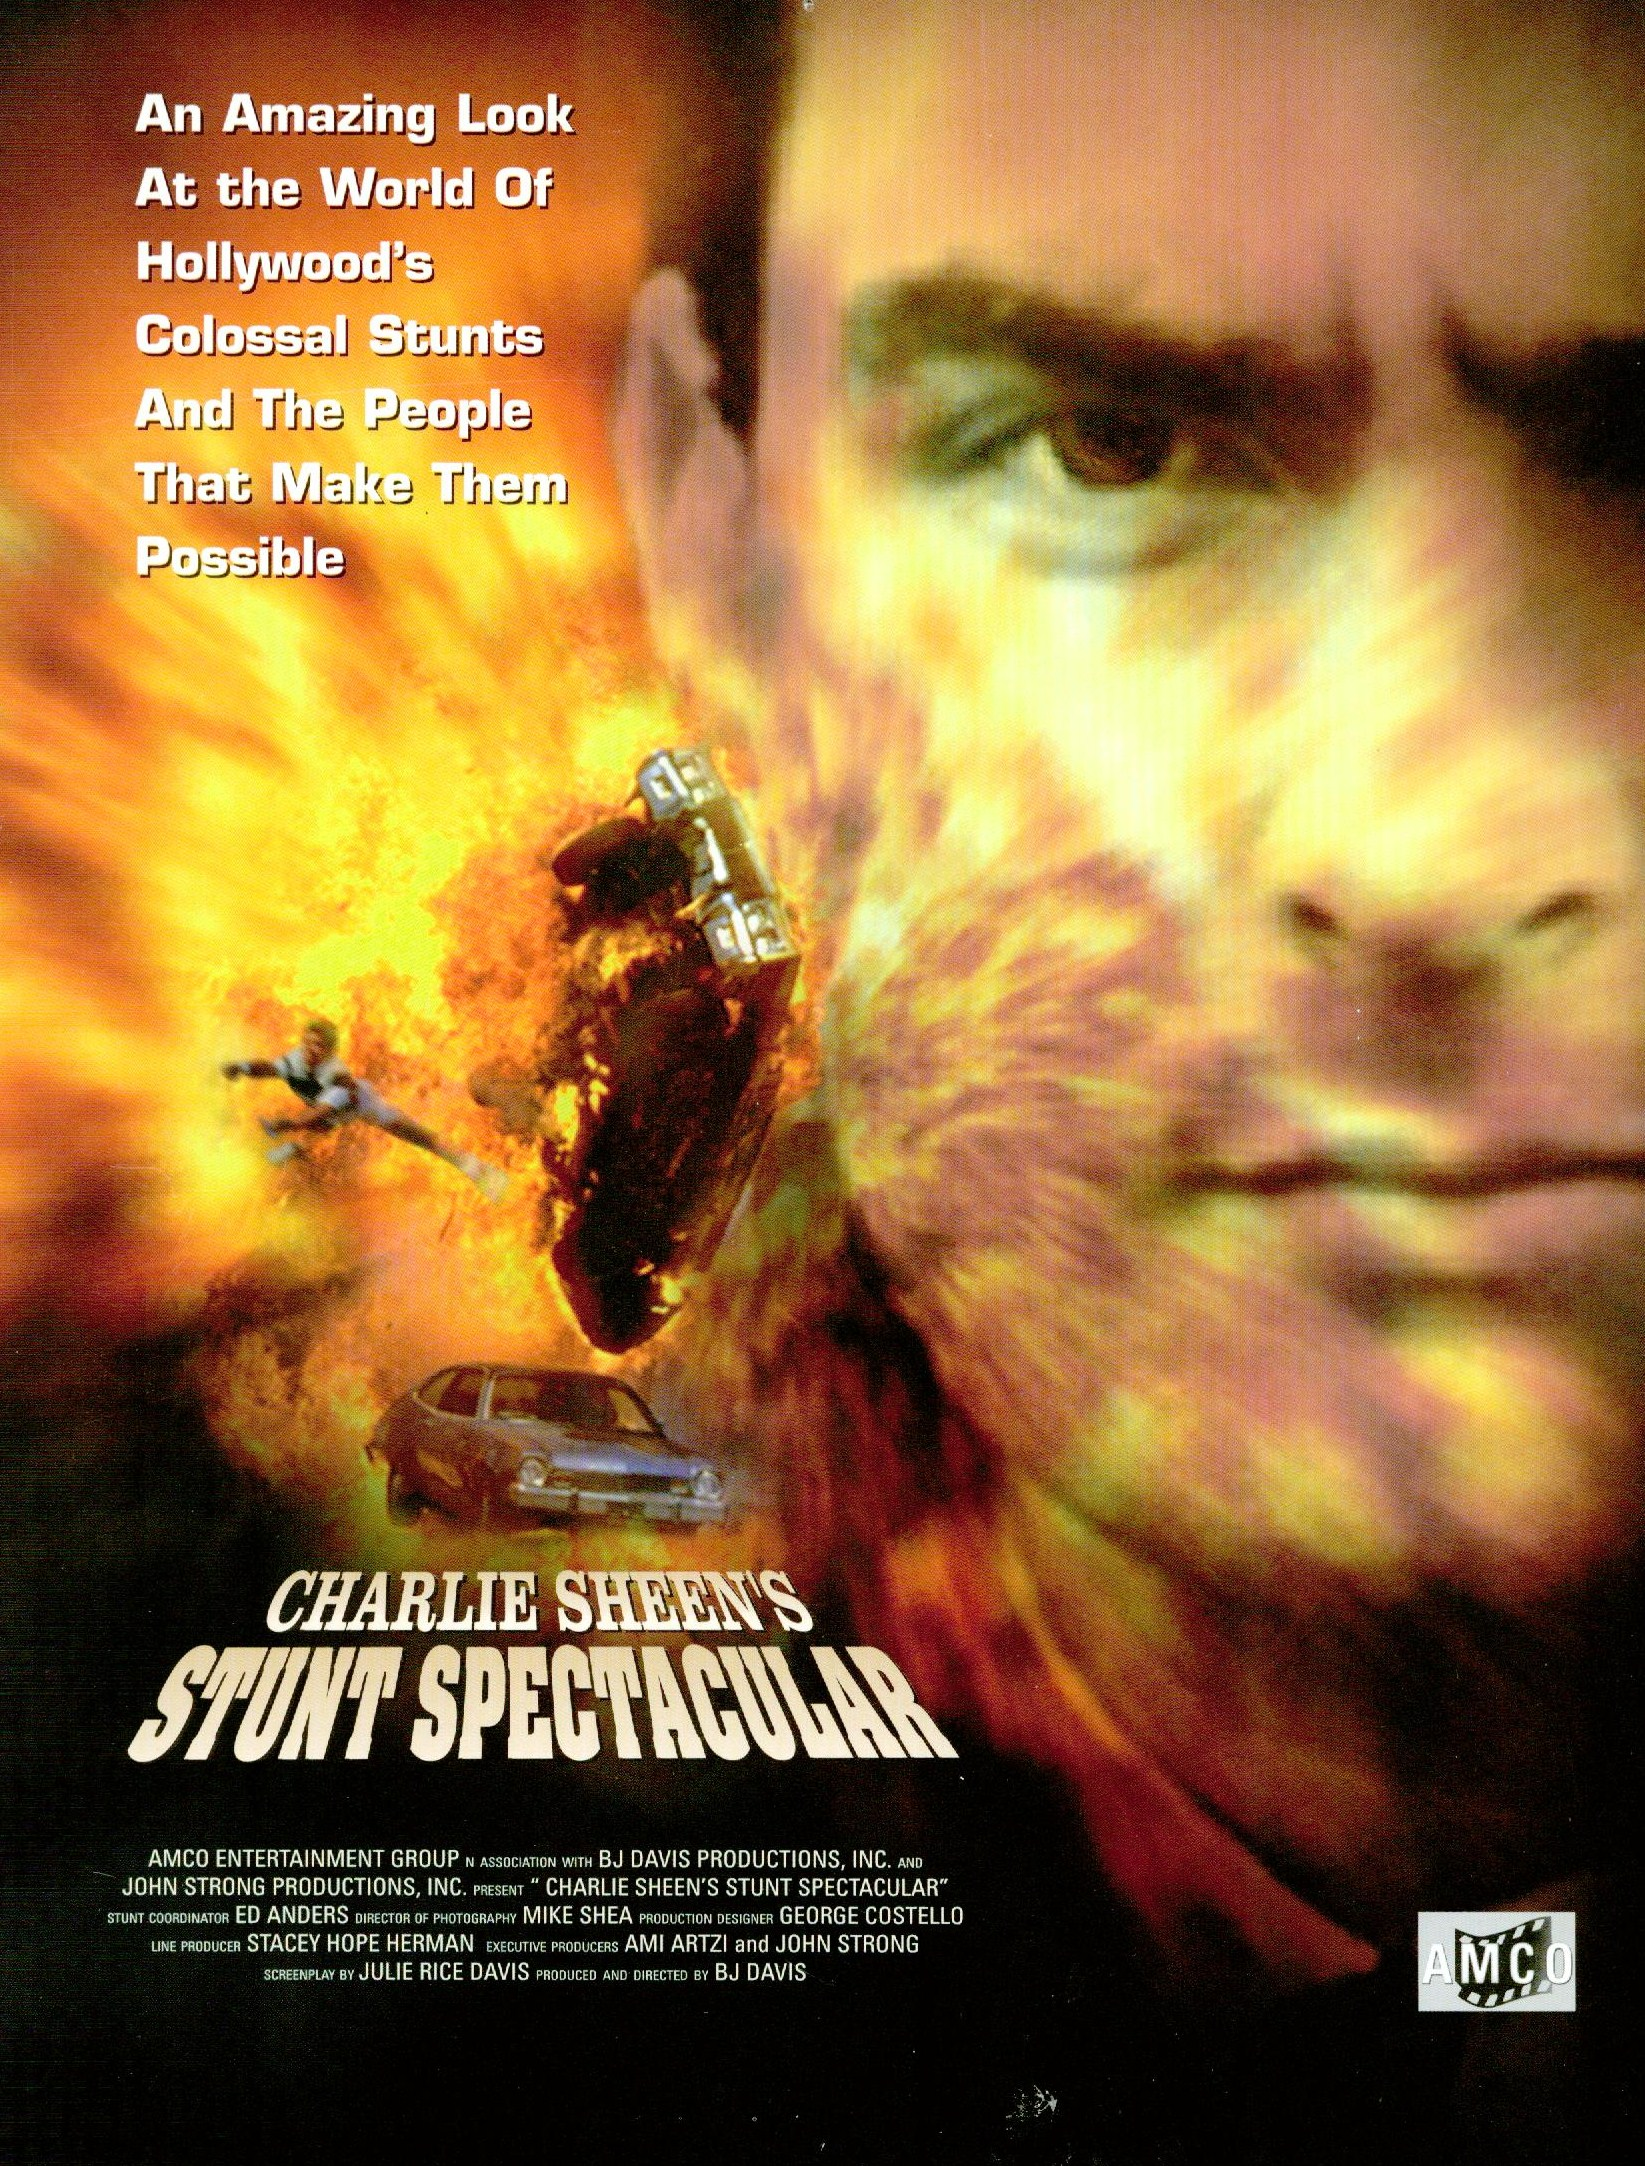 Charlie Sheen's Stunt Spectacular